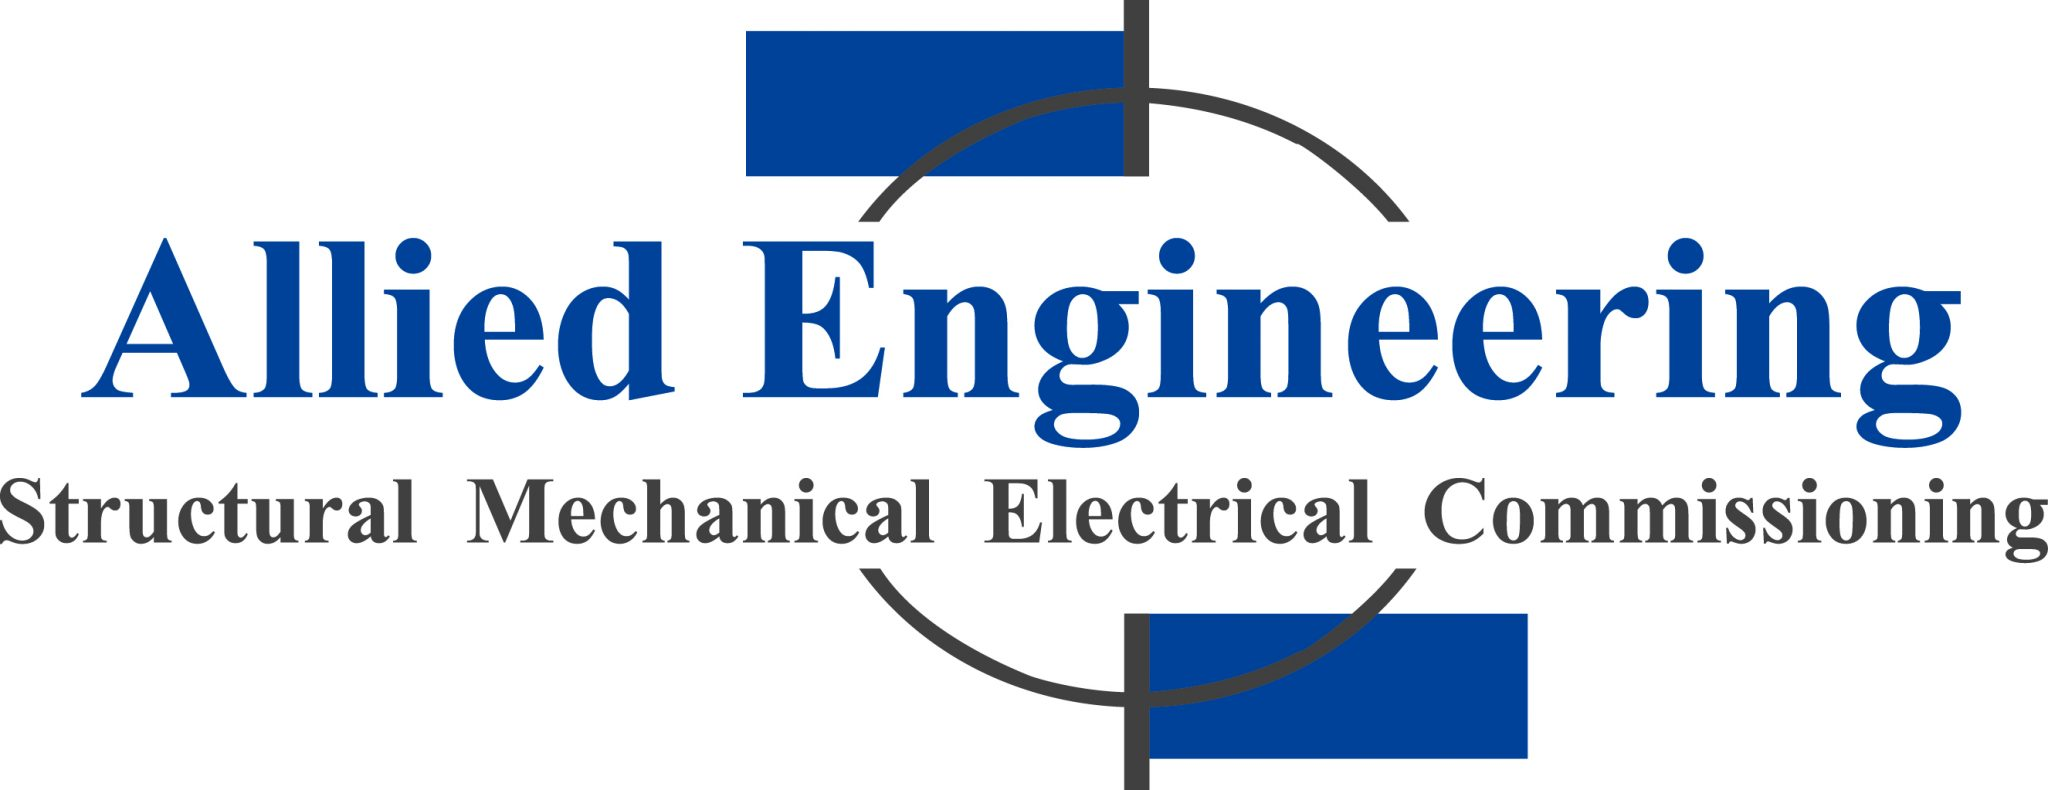 Allied Engineering Inc.